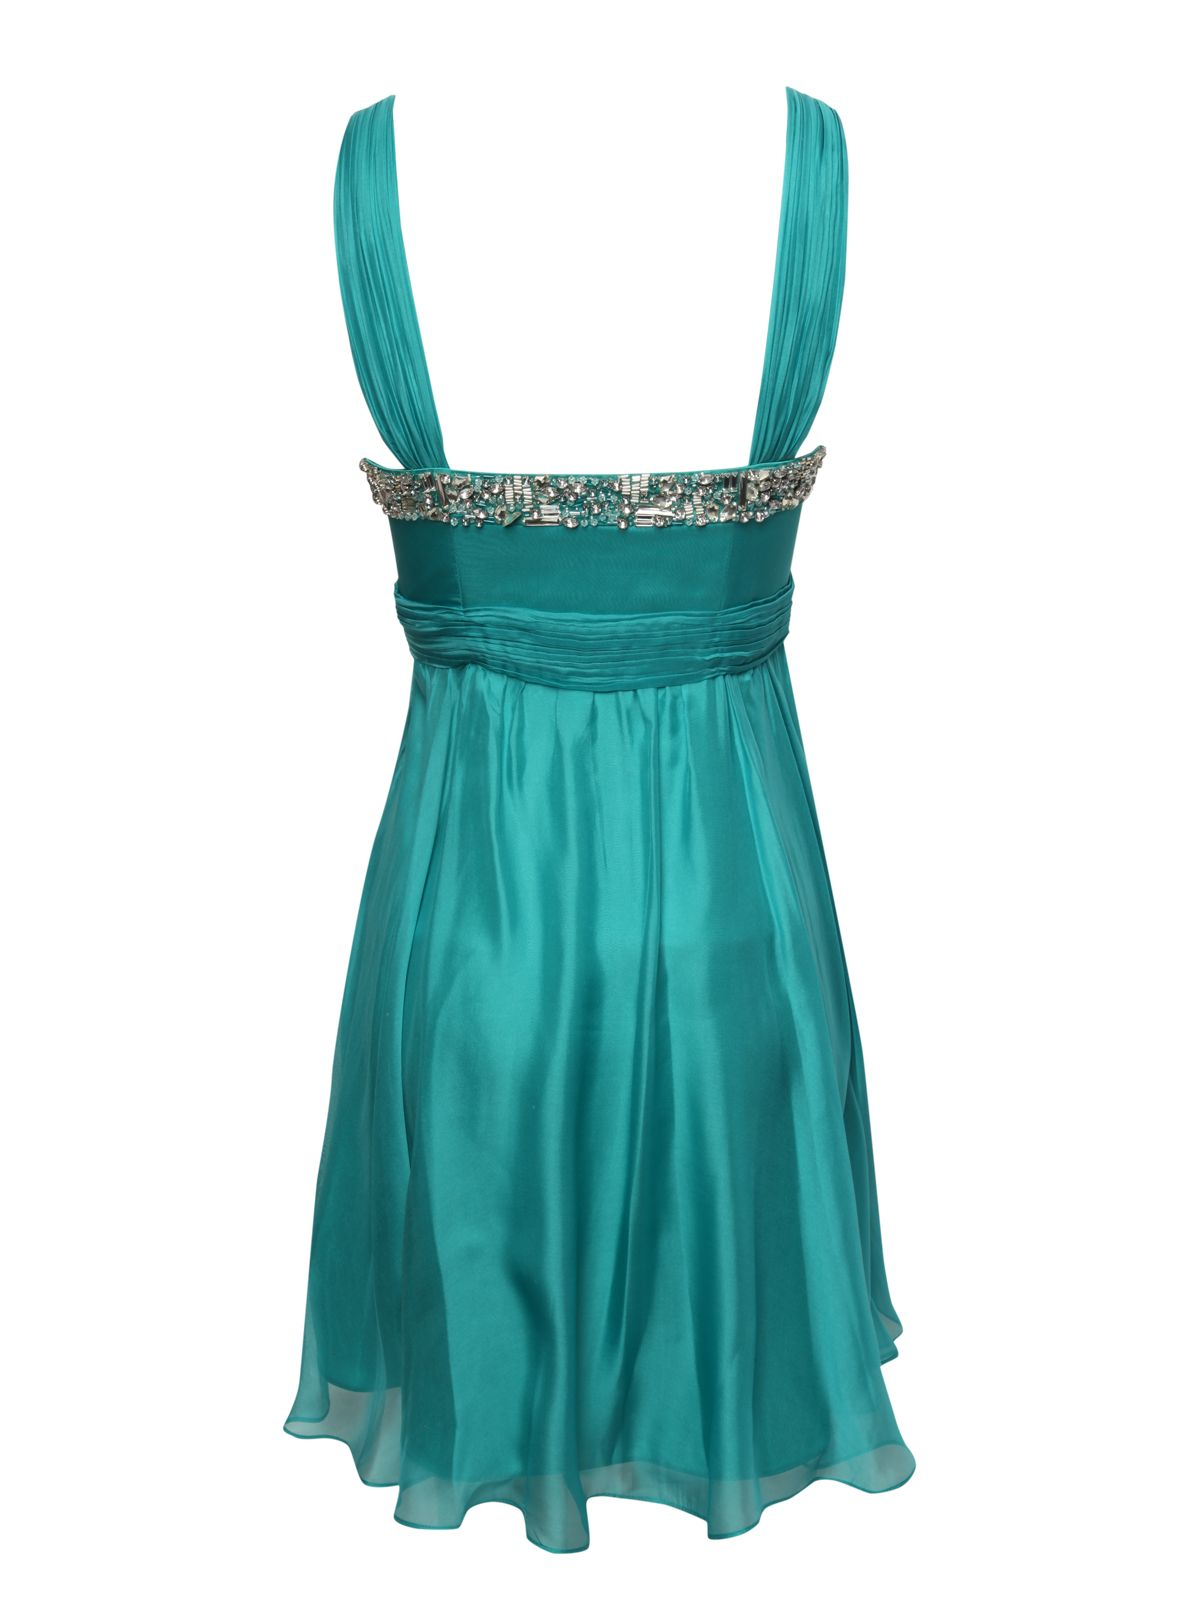 Silk embellished prom dress